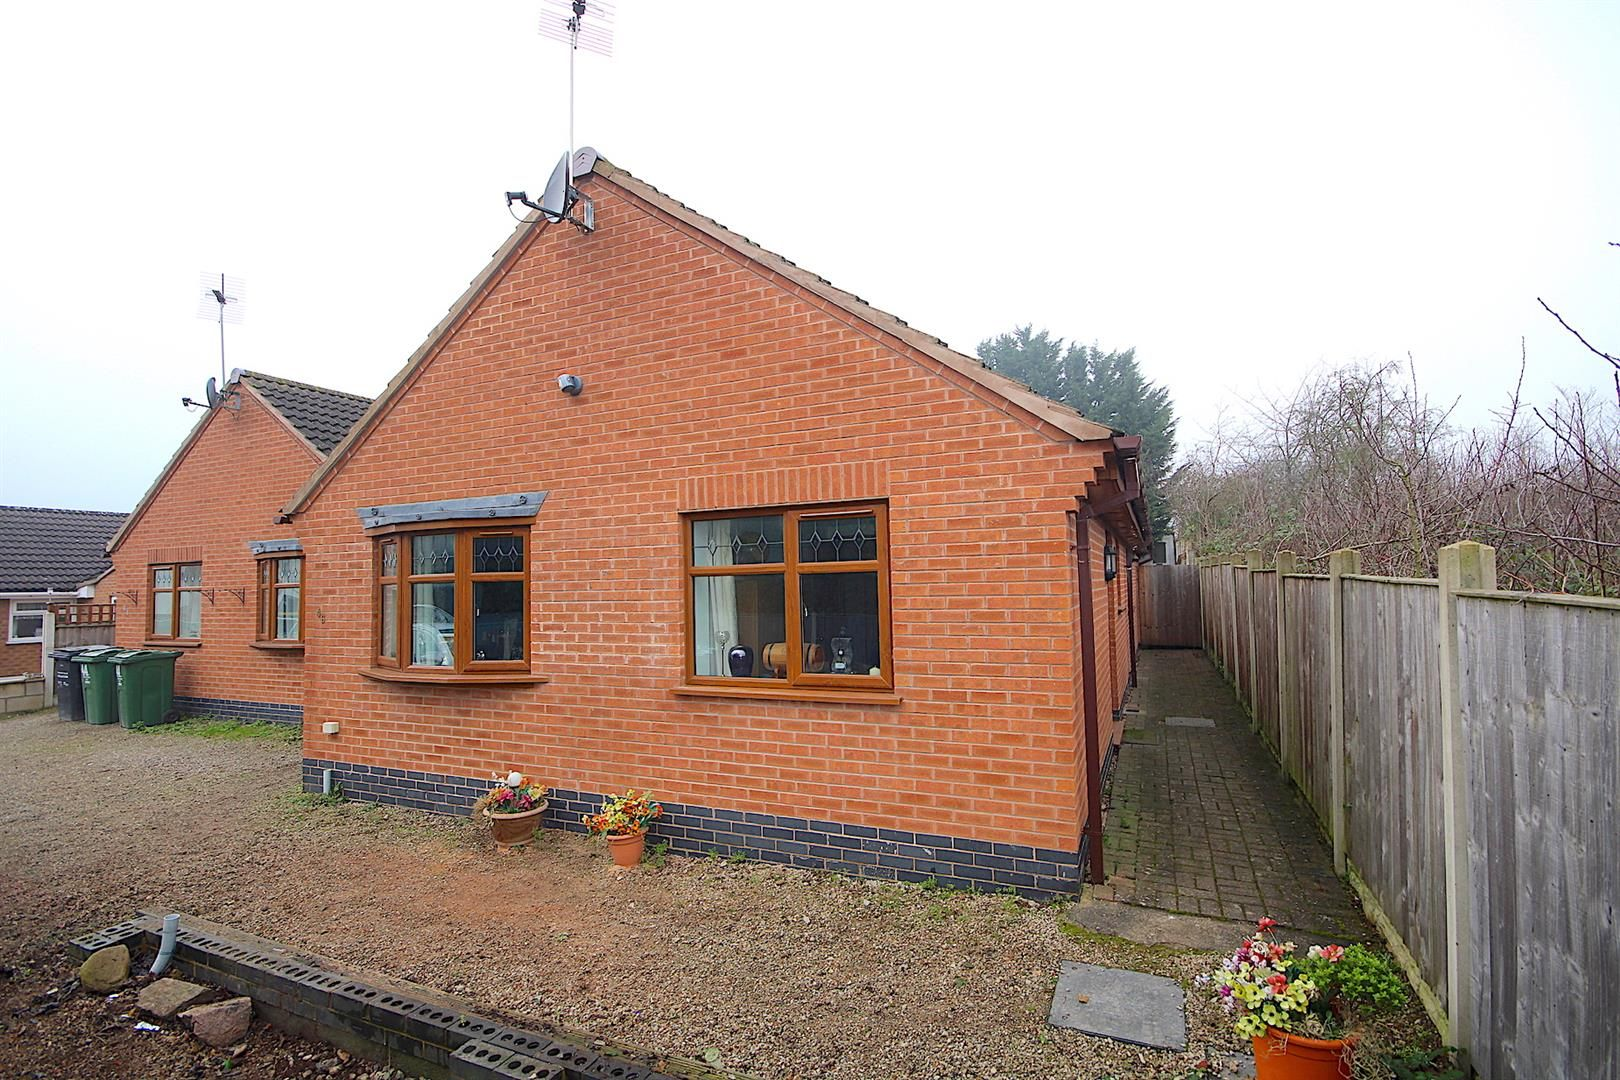 Property photo 1 of 14. Frontage